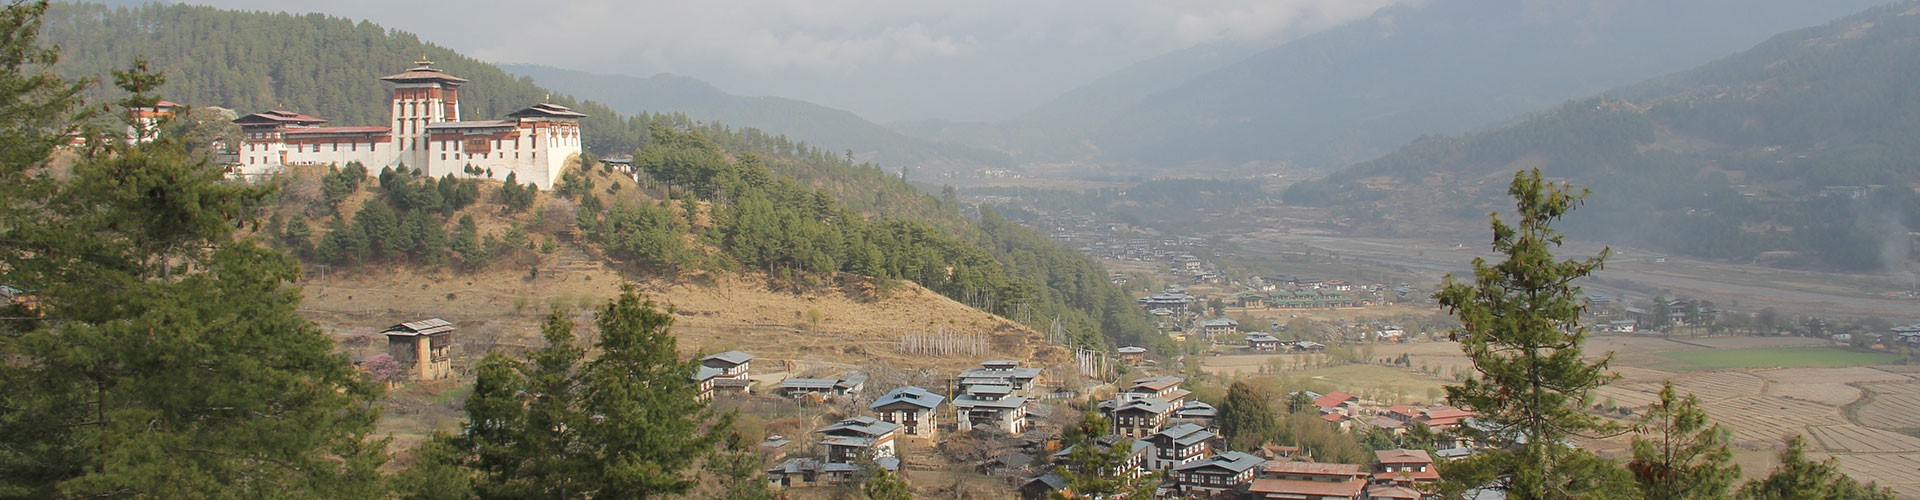 background-bumthang